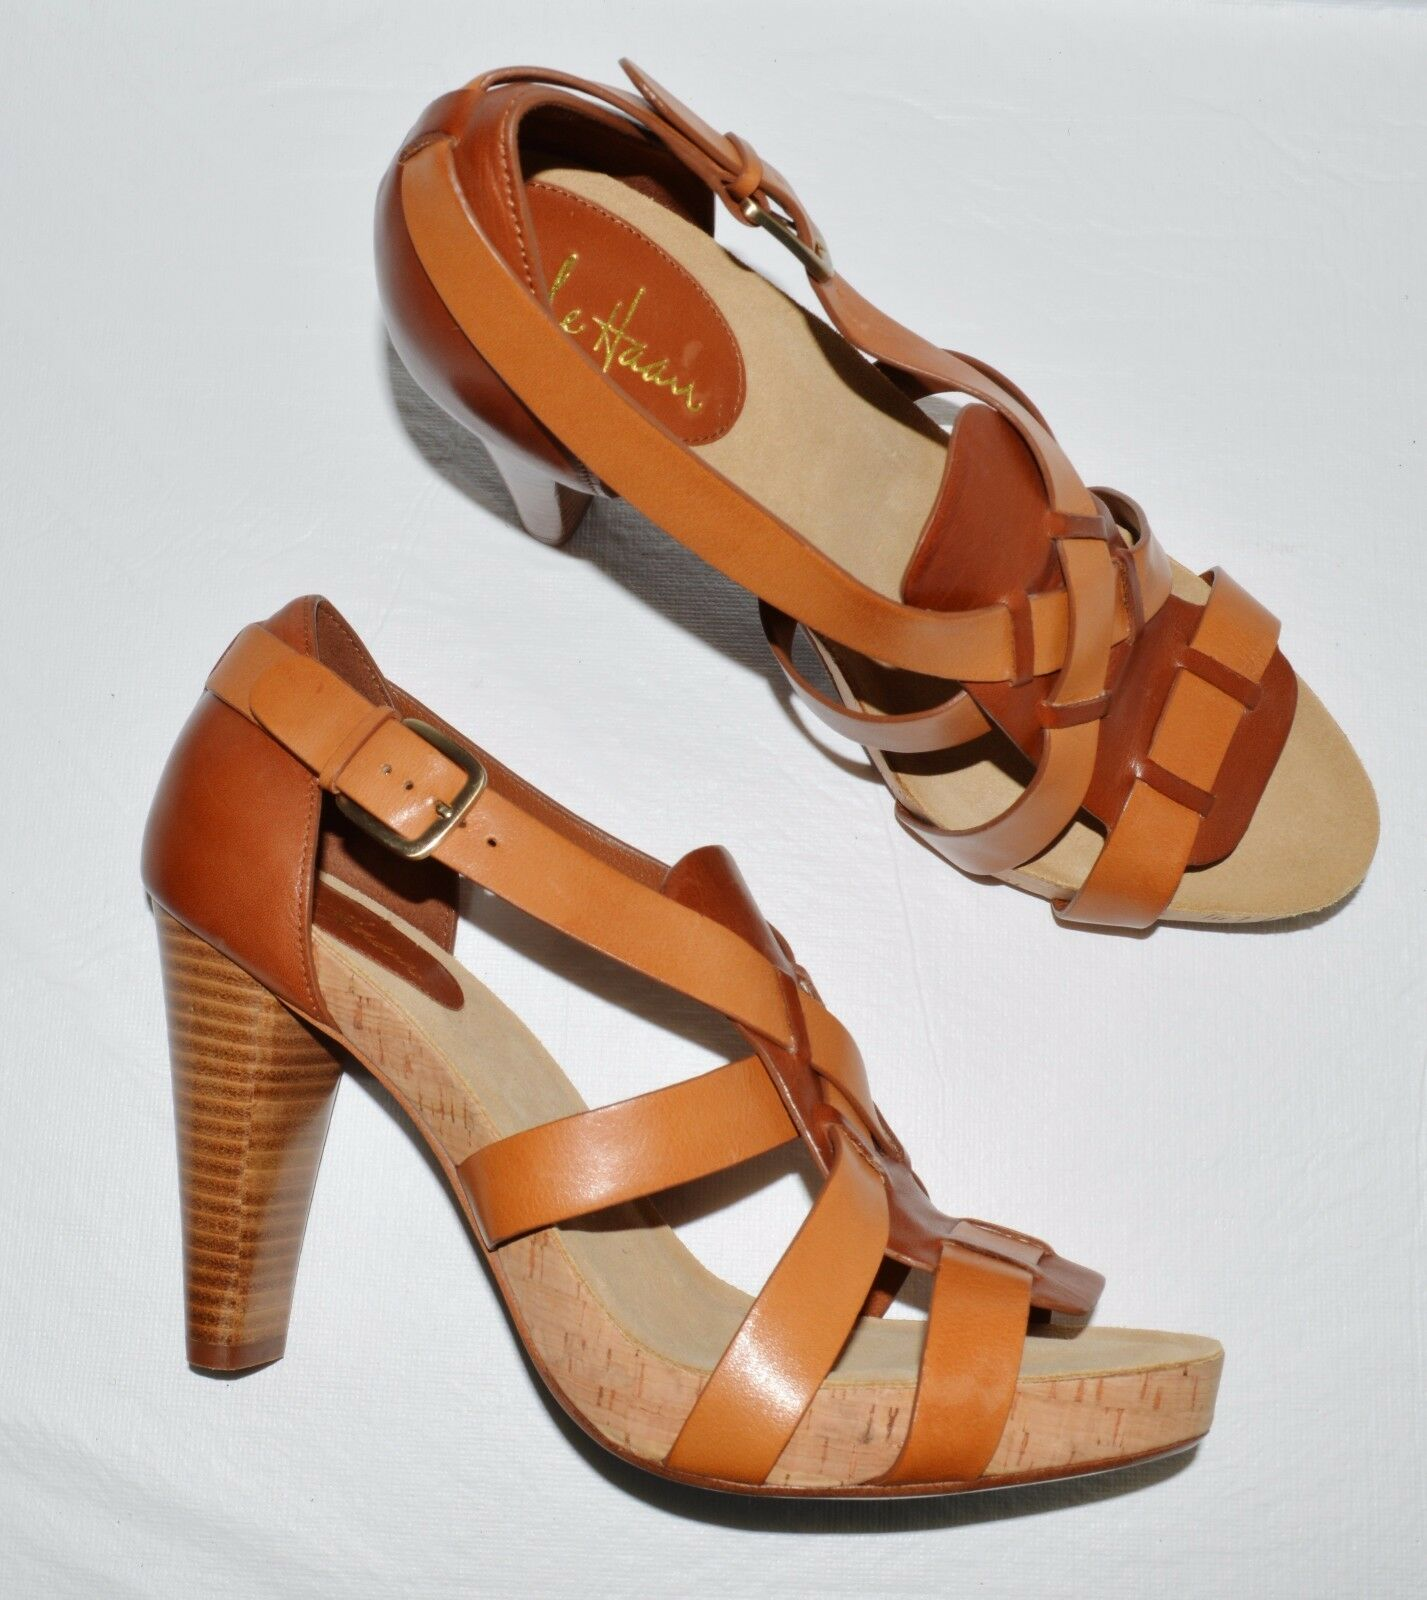 COLE HAAN  AIR NEW BROWN SIZE 9.5 B BROWN NEW LEATHER PLATFORM SANDALS 65e756